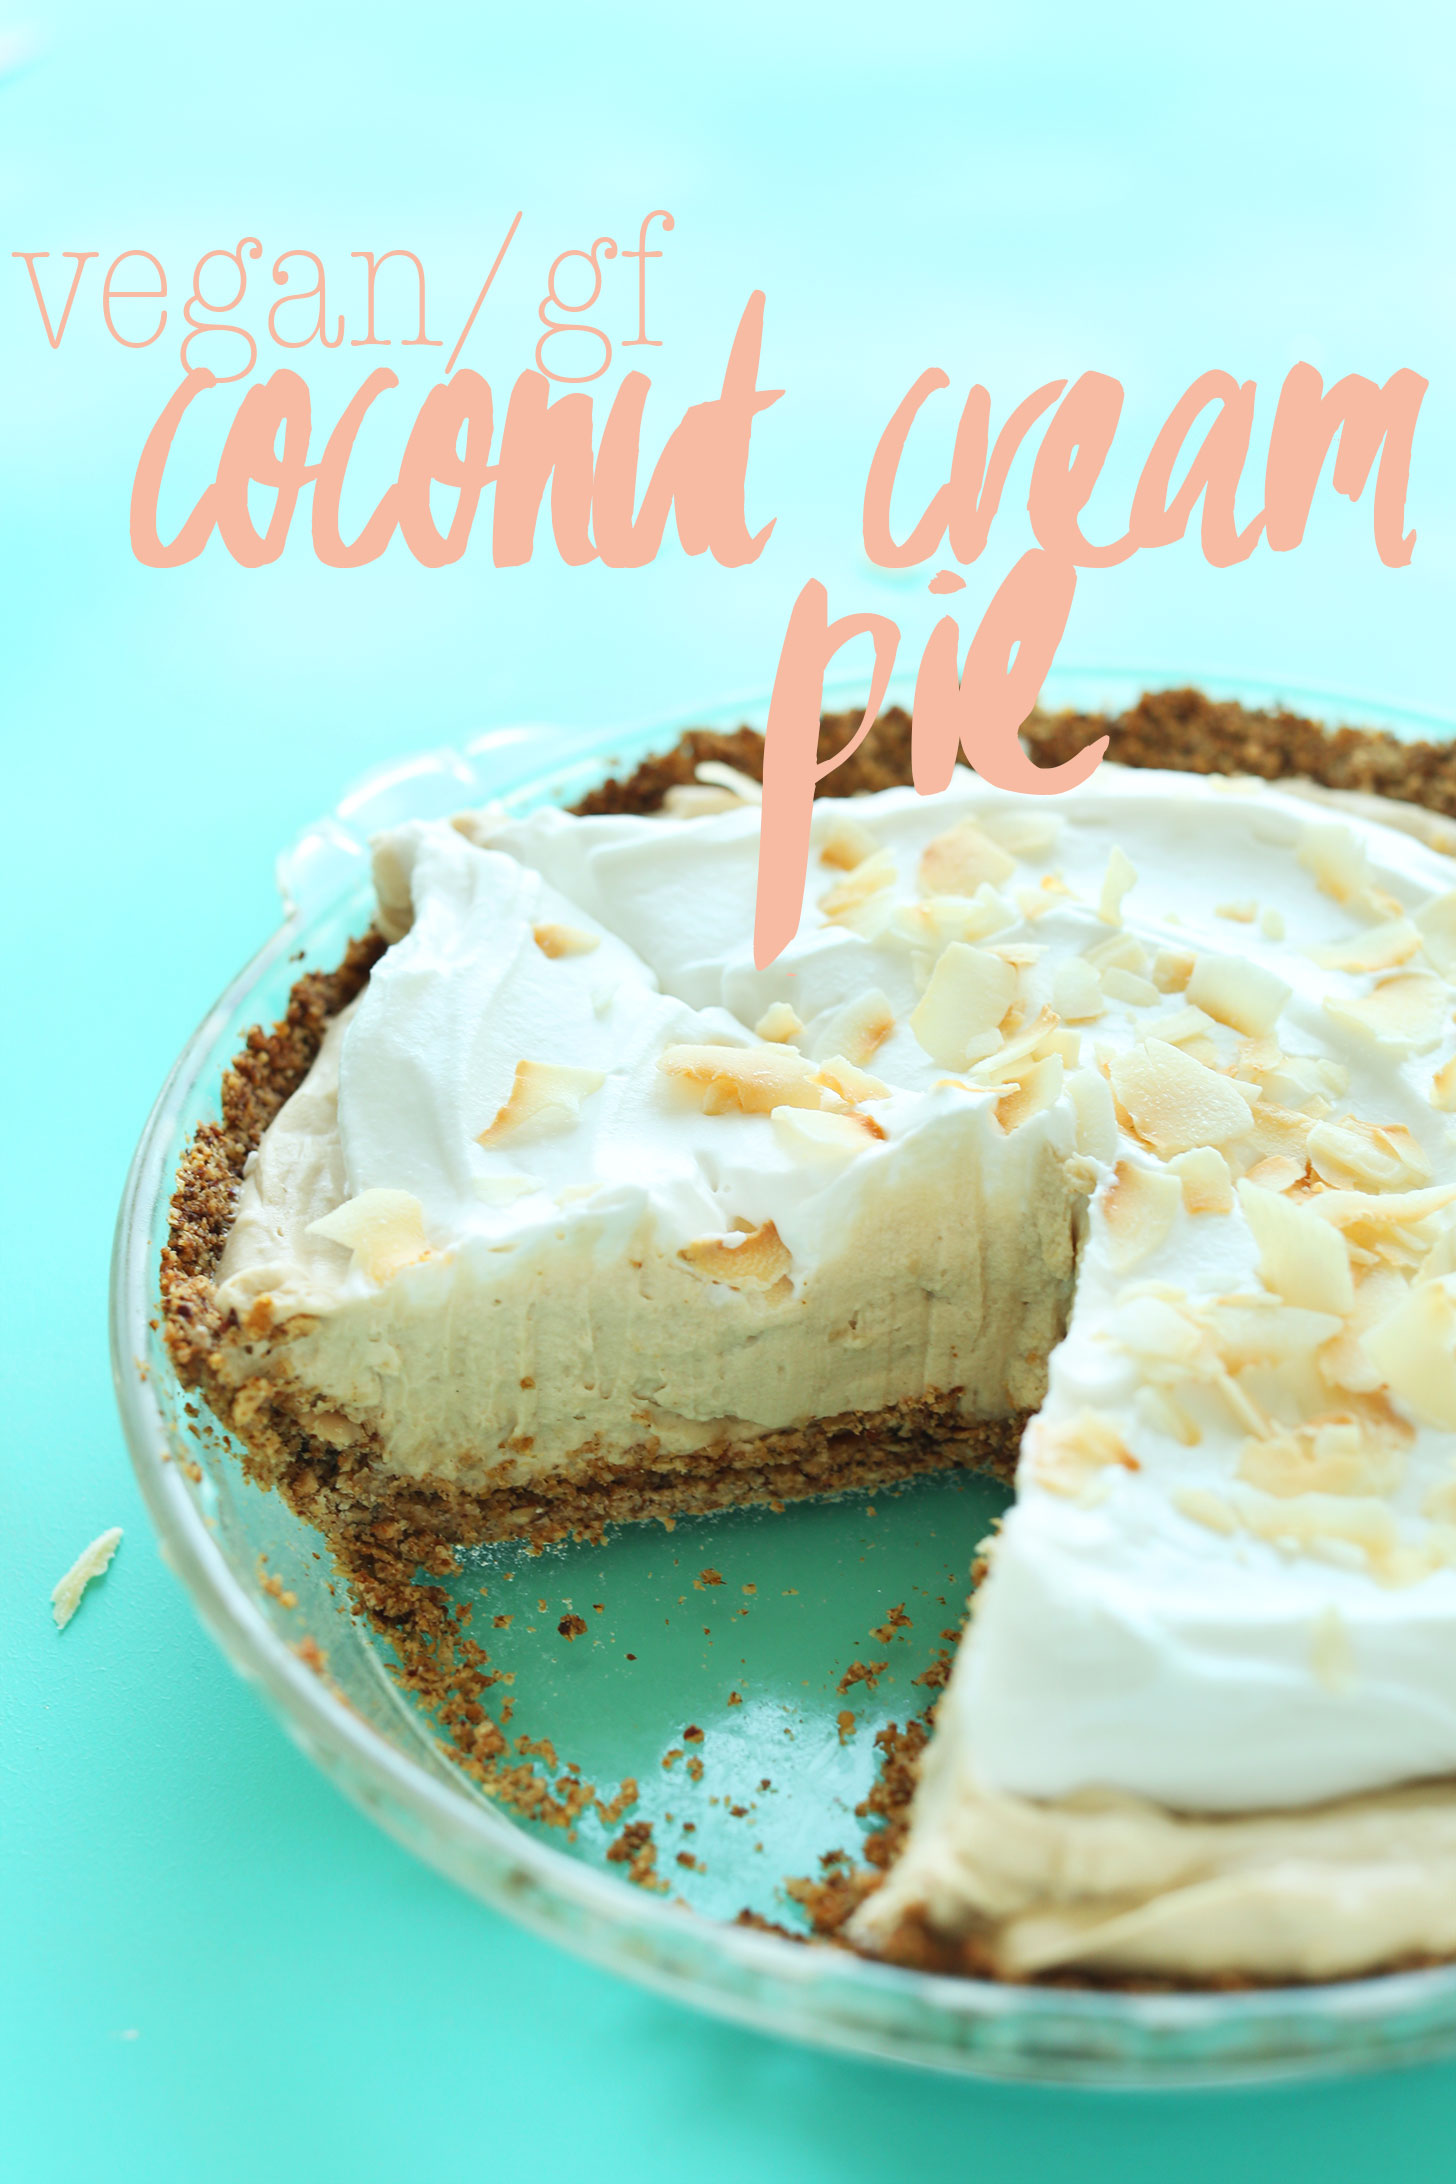 Vegan gluten-free Coconut Cream Pie with a slice removed from the whole pie